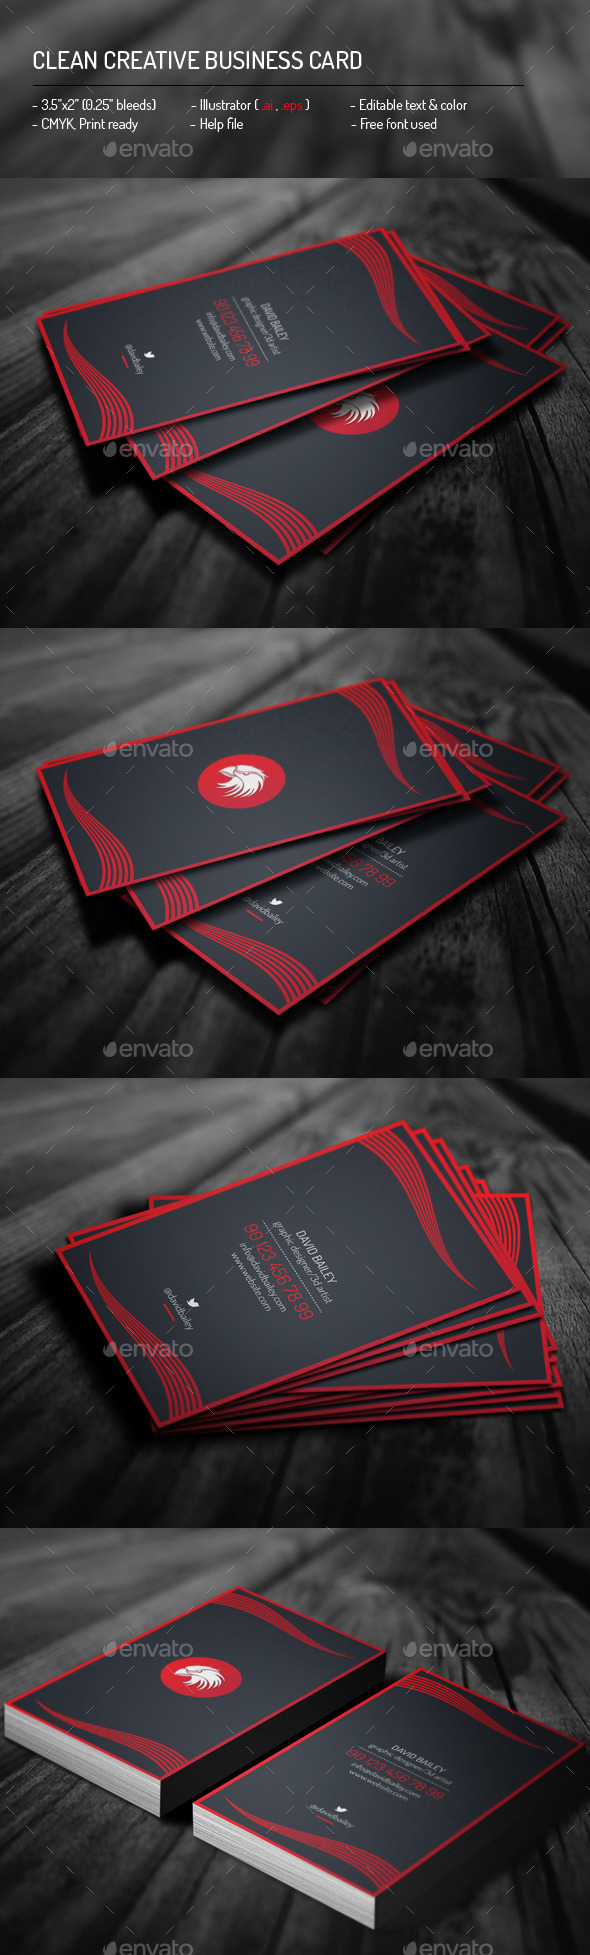 GraphicRiver Clean Creative Business Card 11899405